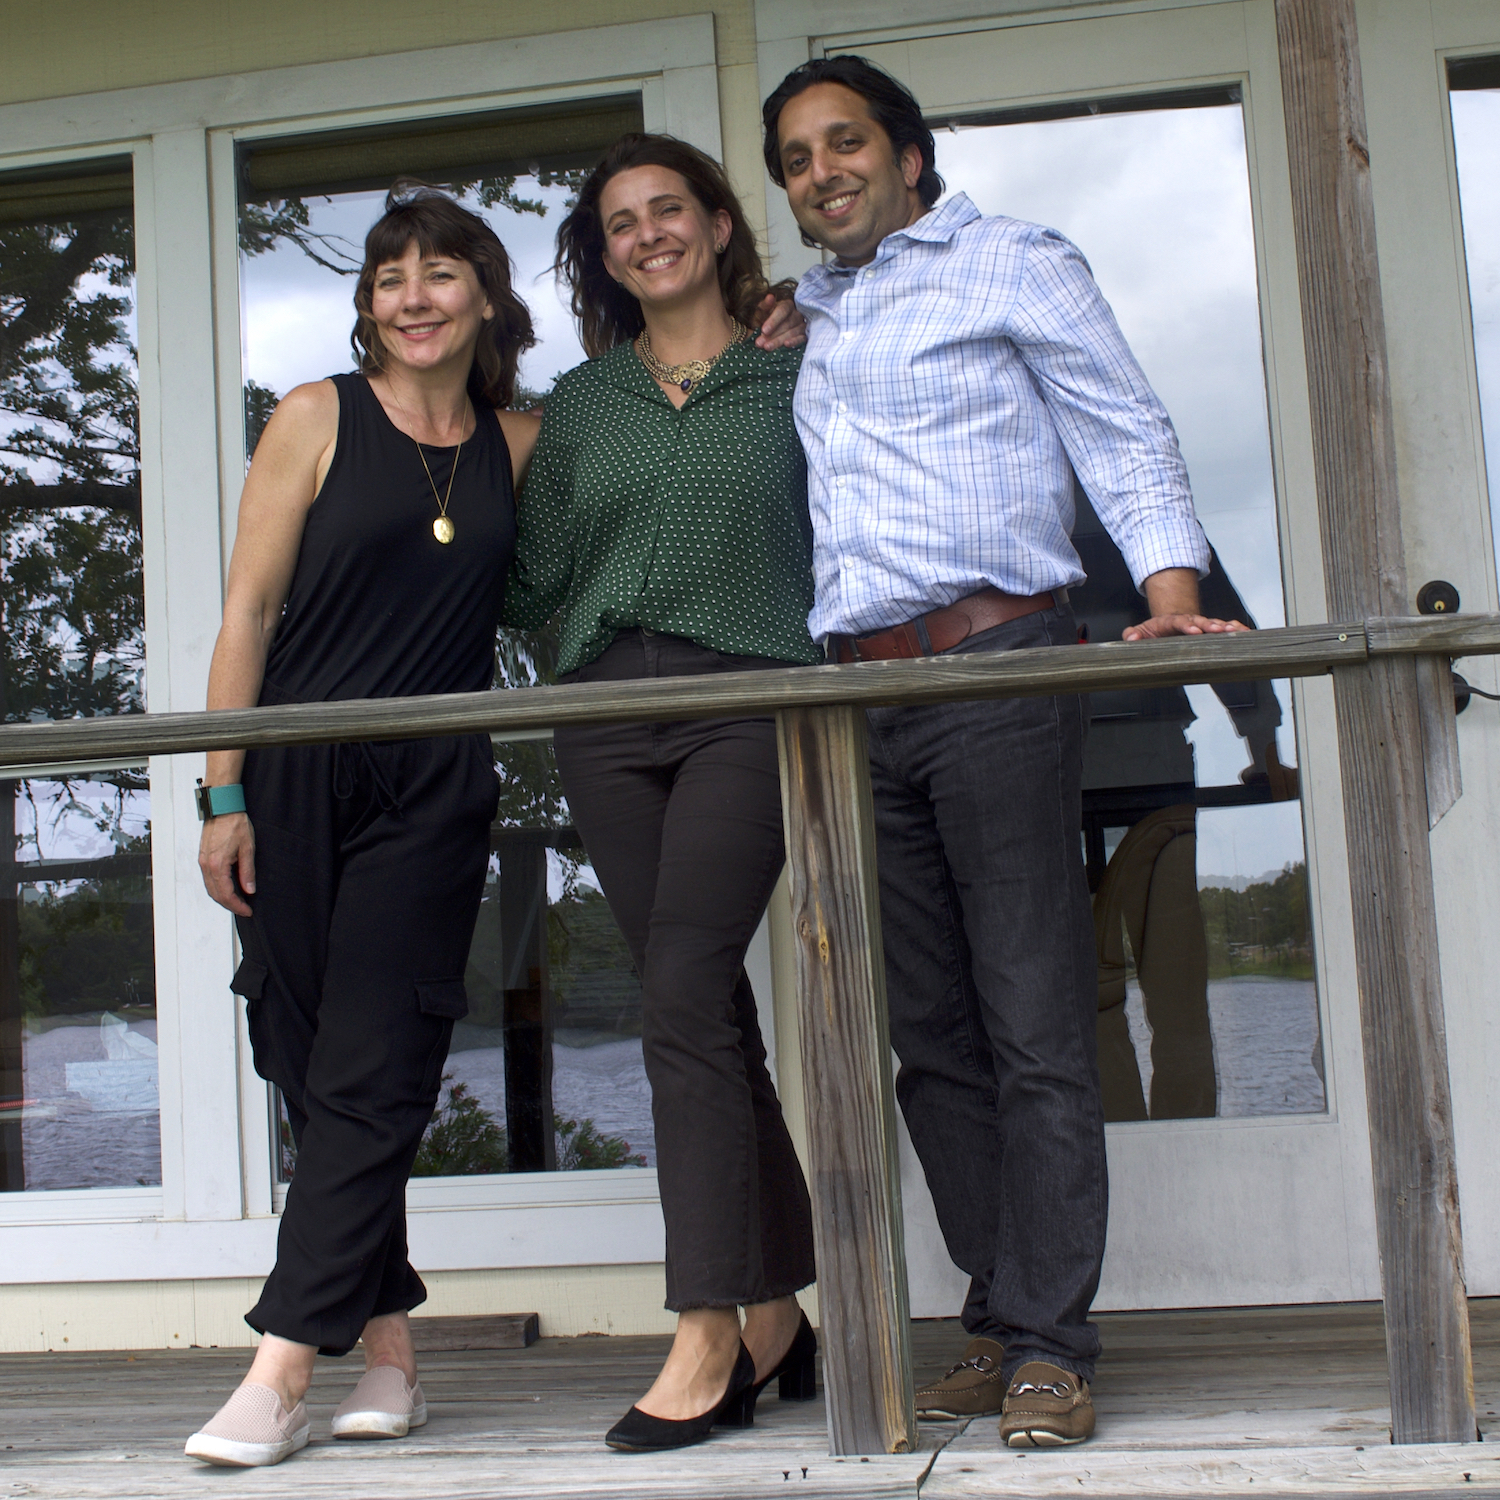 Me (left) and my co-founders, Clarissa Hulsey- Bailey and Mehlam Bhiwandiwala